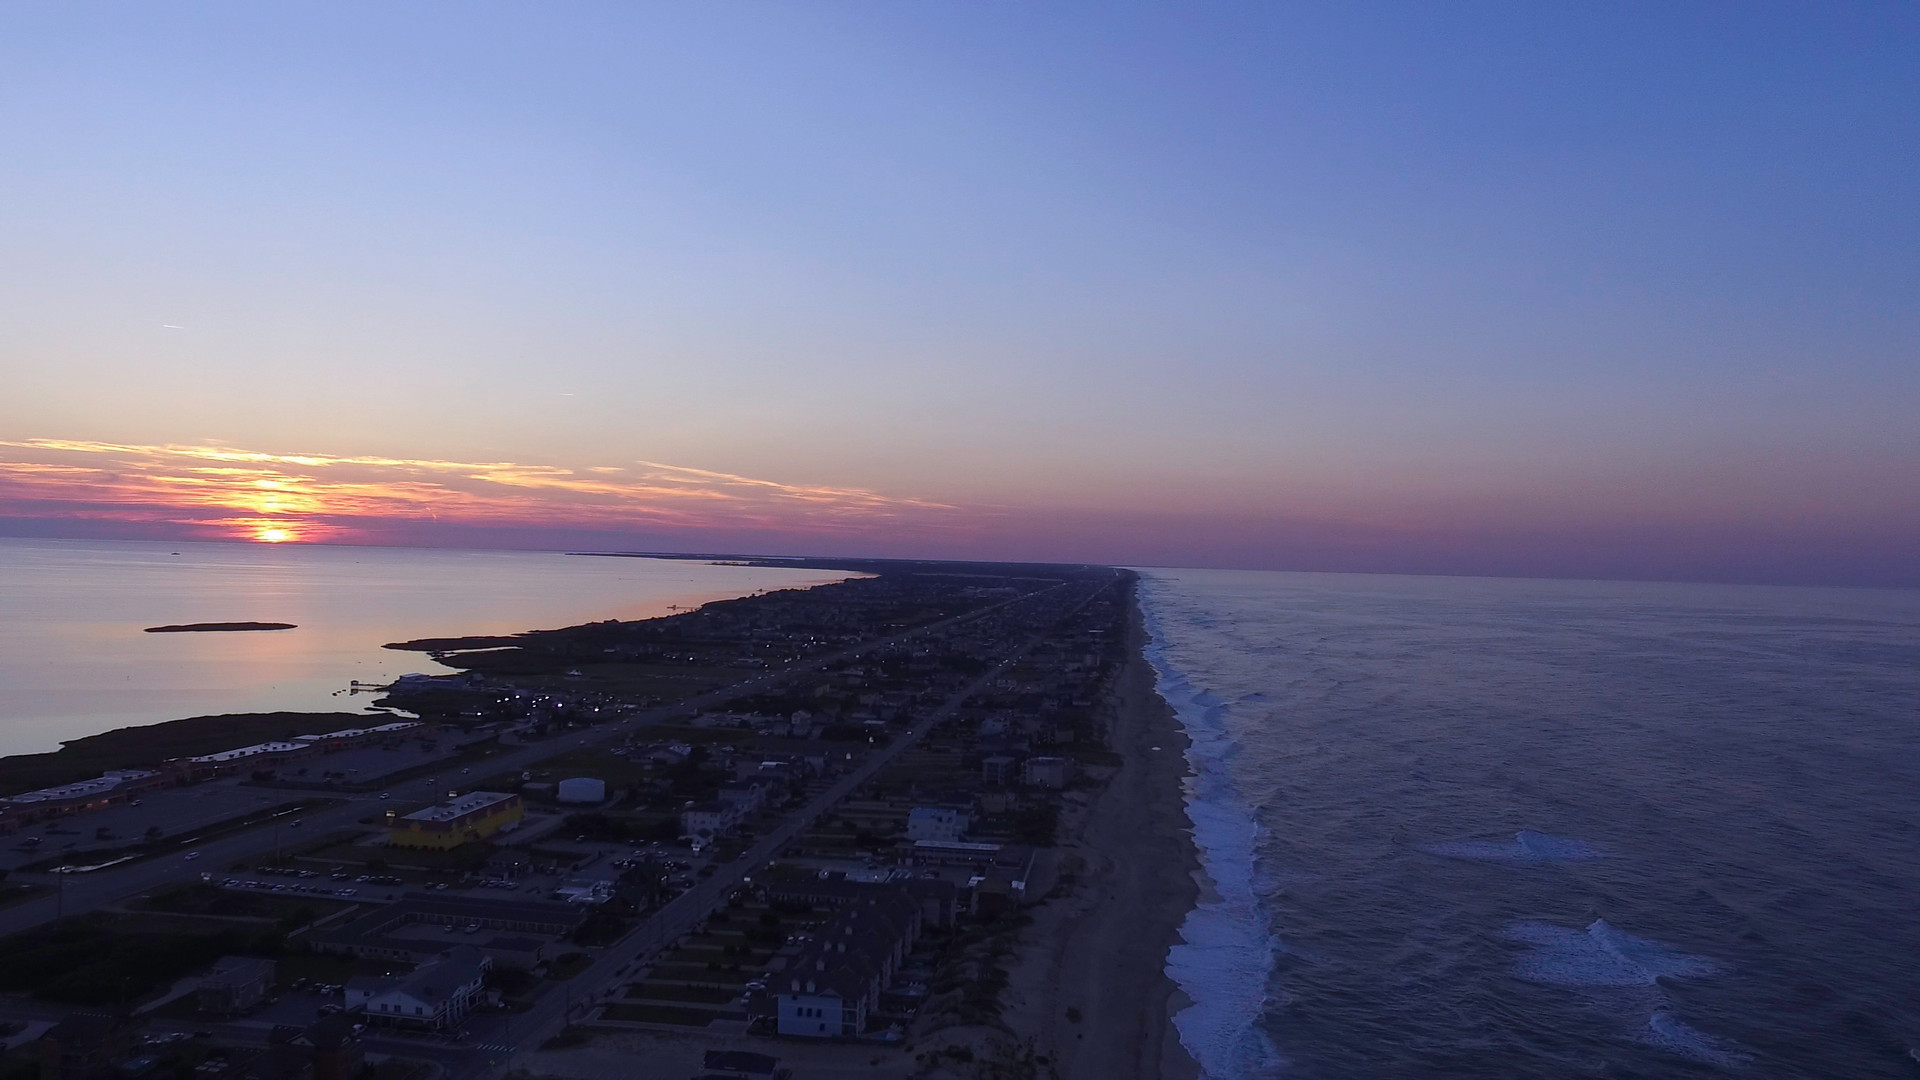 Sun setting over the Outer Banks